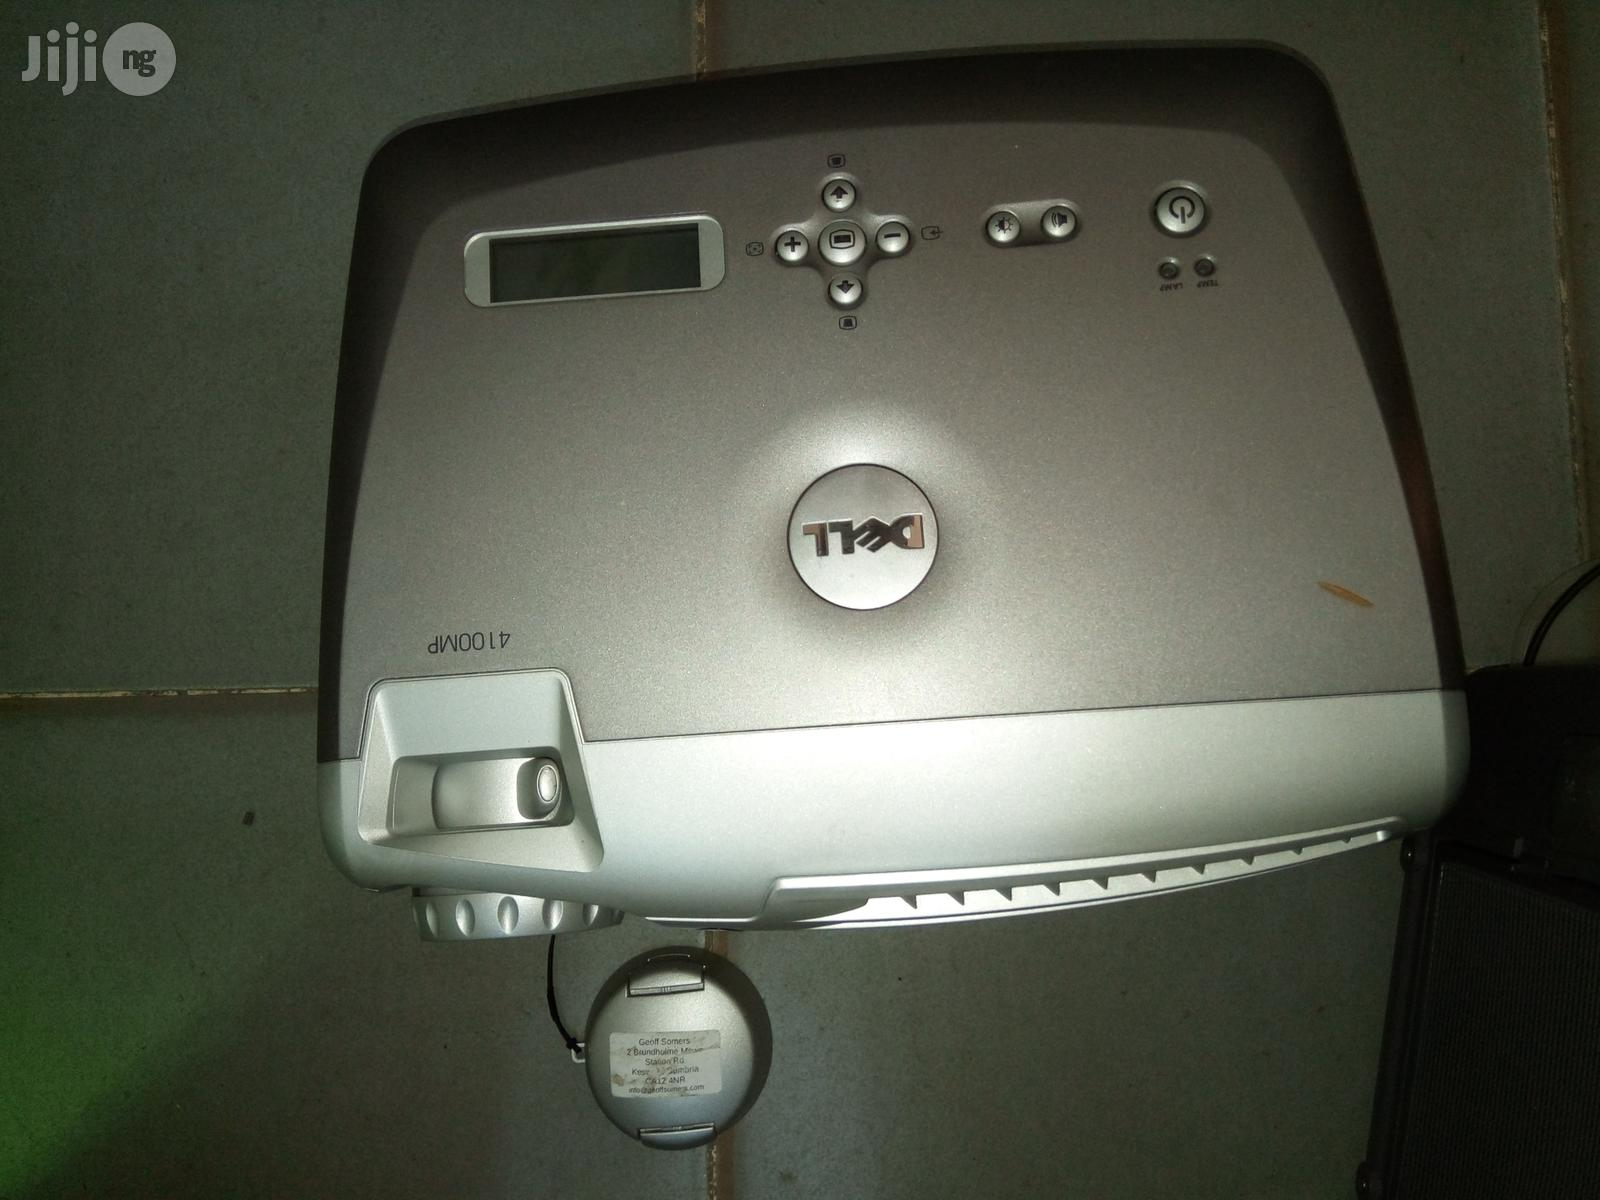 Neat Projector For Sale Abuja In Wuse Tv Dvd Equipment Mega Projectors Jiji Ng A wide variety of digital projector net options are available to you, such as use. neat projector for sale abuja